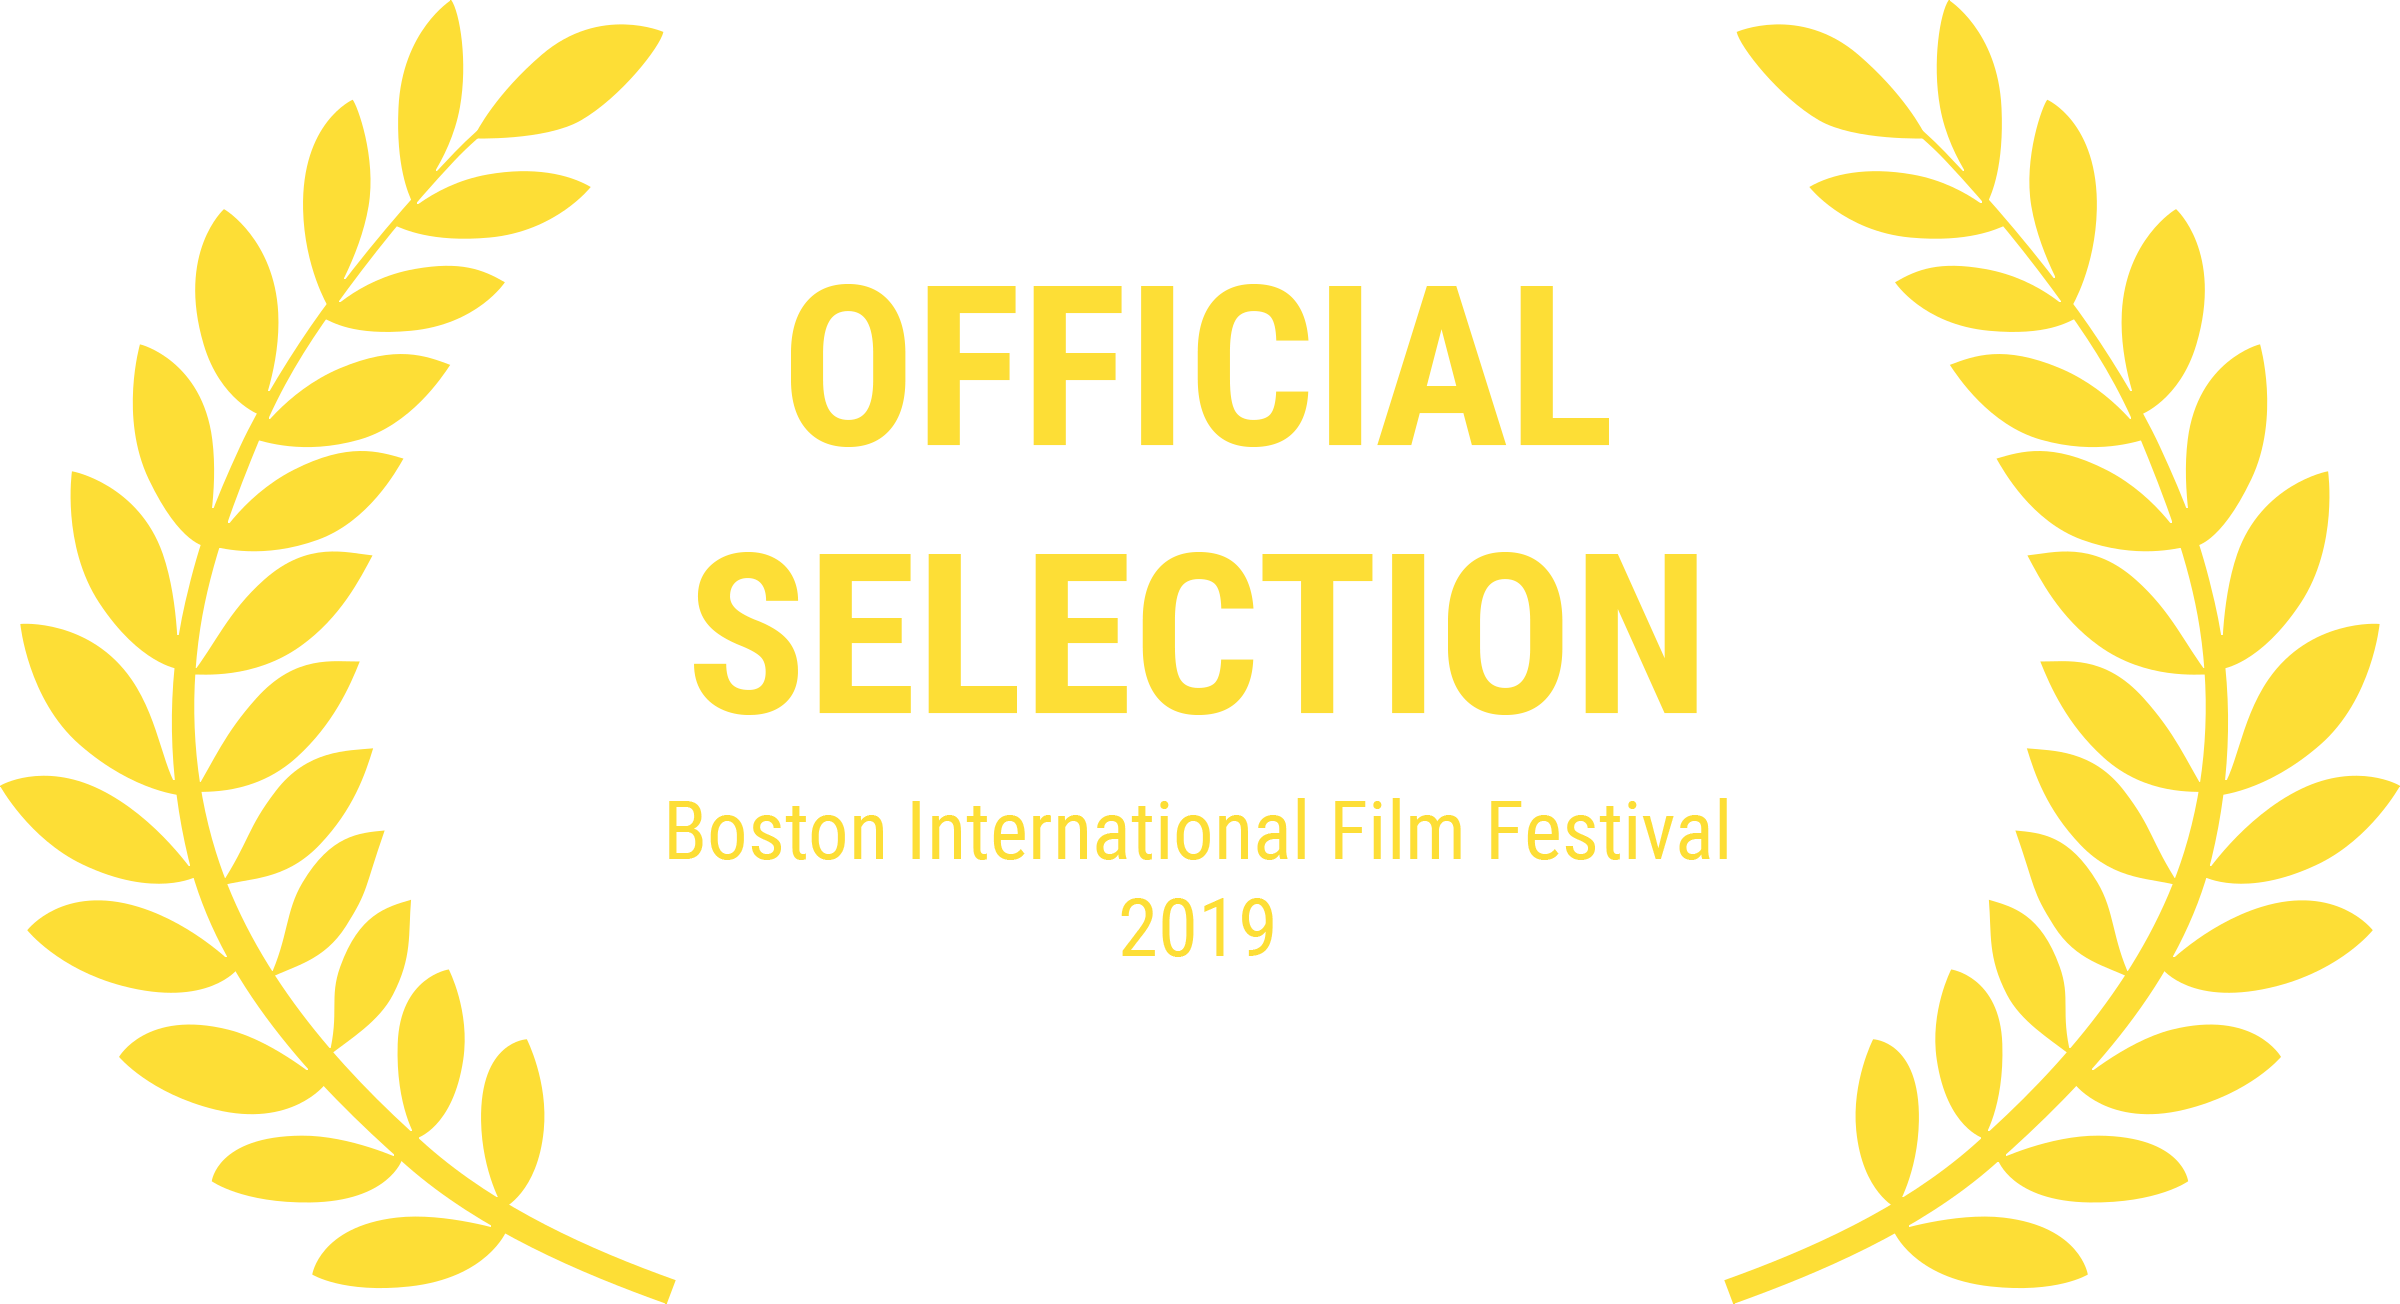 Low Low - Official Selection - Boston International Film Festival 2019